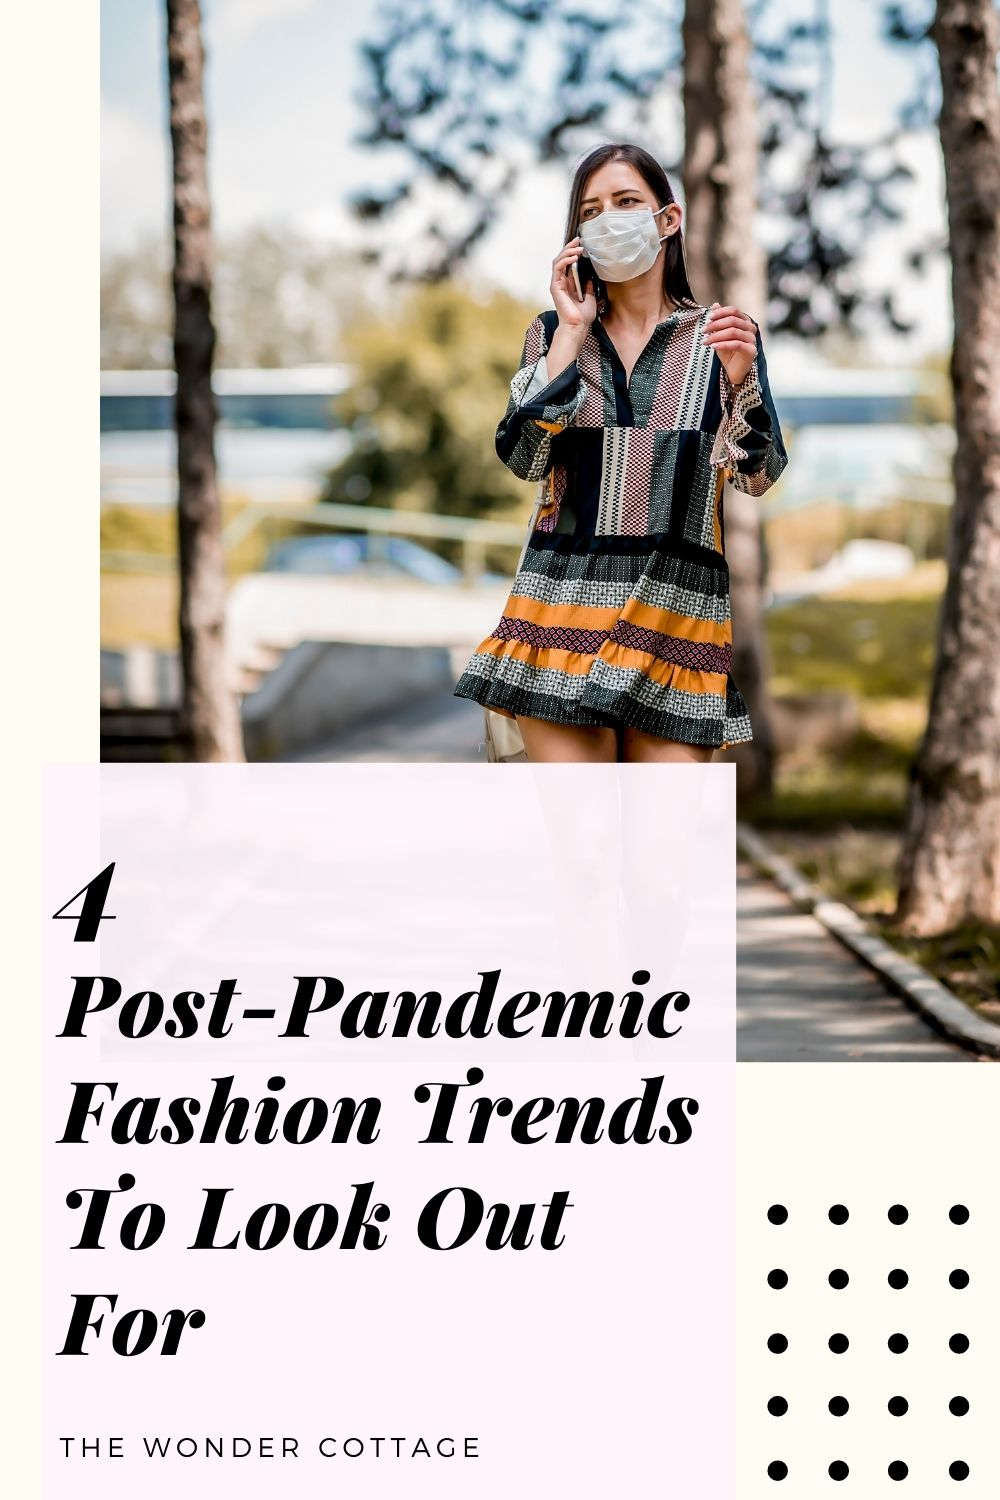 4 Post-Pandemic Fashion Trends To Look Out For